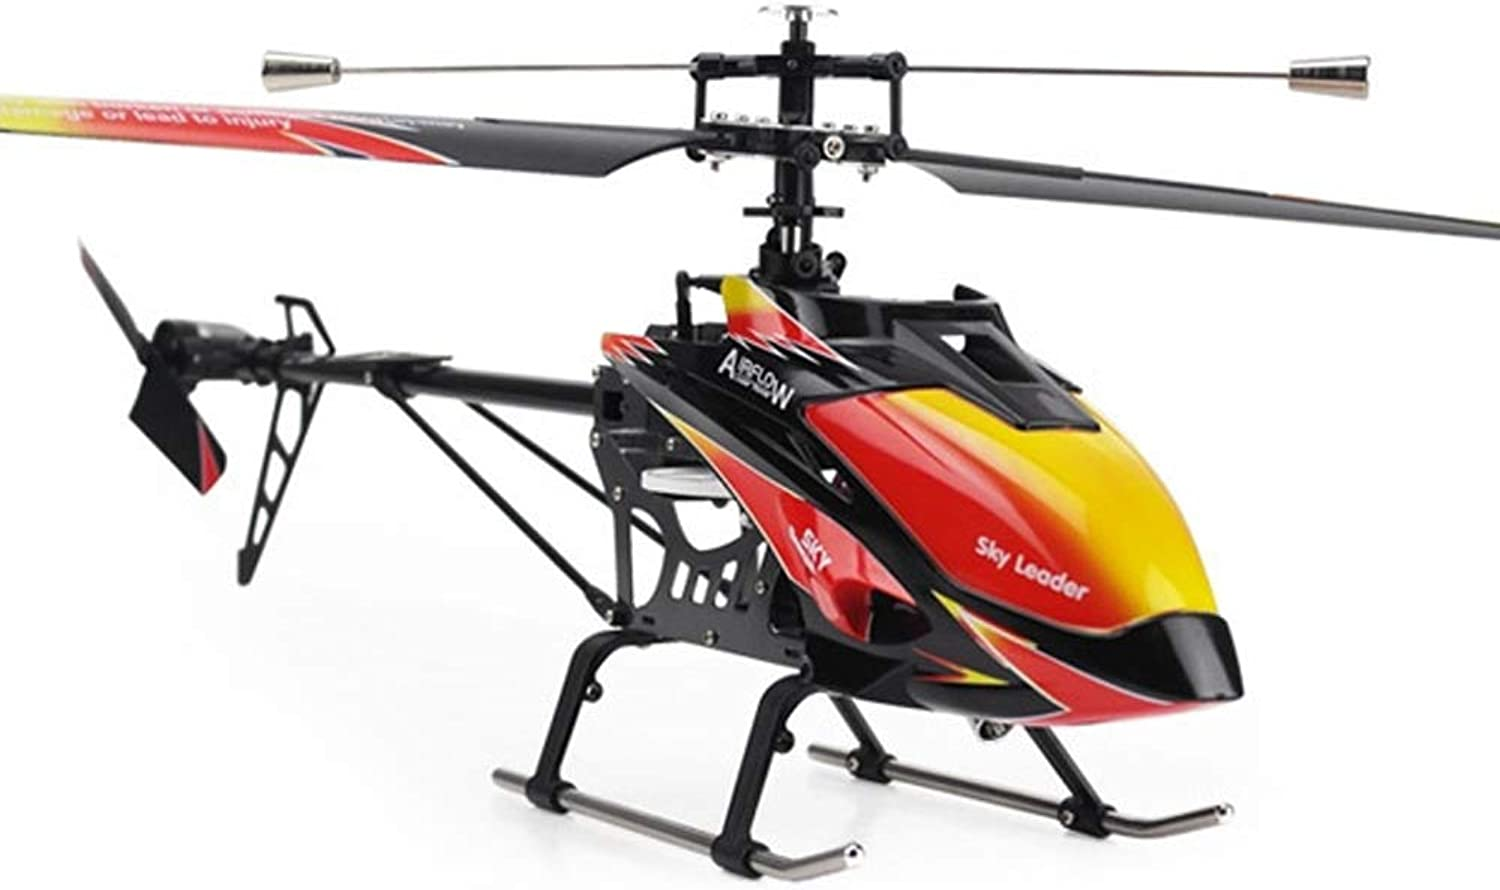 Pinjeer 2.4GHz 4ch Single-propeller Rc Helicopter 70cm Built-In Gyro Toys Rc Helicopter Model With LCD Transmitter Educational Toys Birthday Gifts for Kids 14+ (Size   4-Battery)